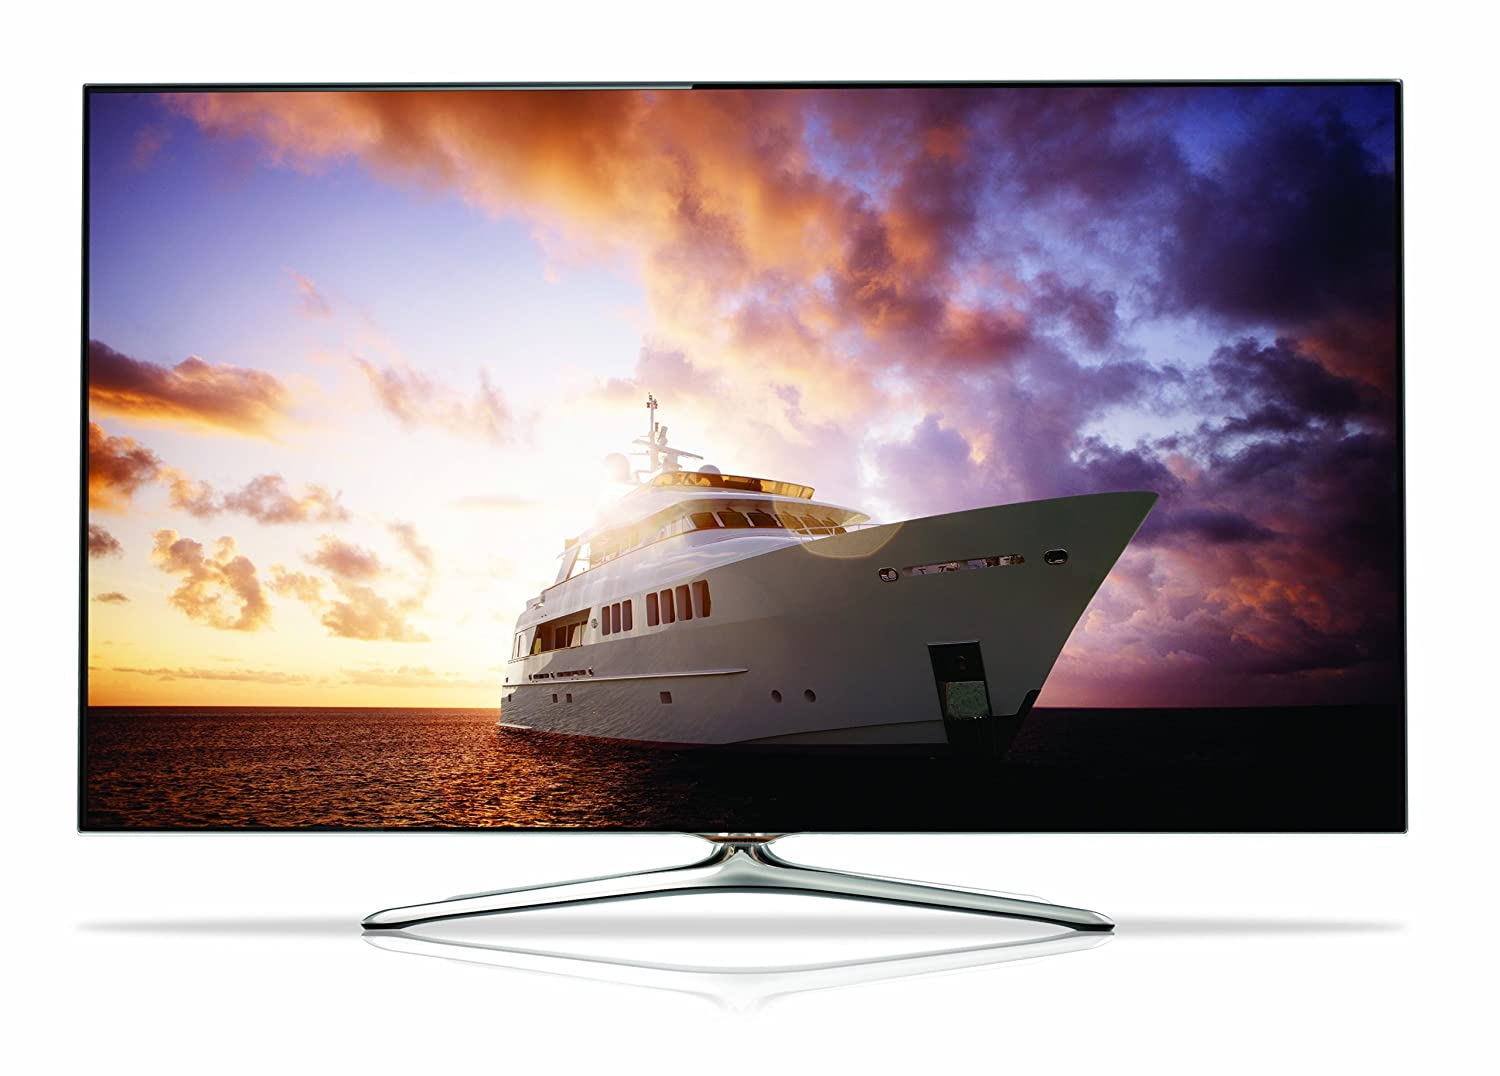 Samsung UN55F7500 55-Inch 1080p 240Hz 3D Ultra Slim Smart LED HDTV